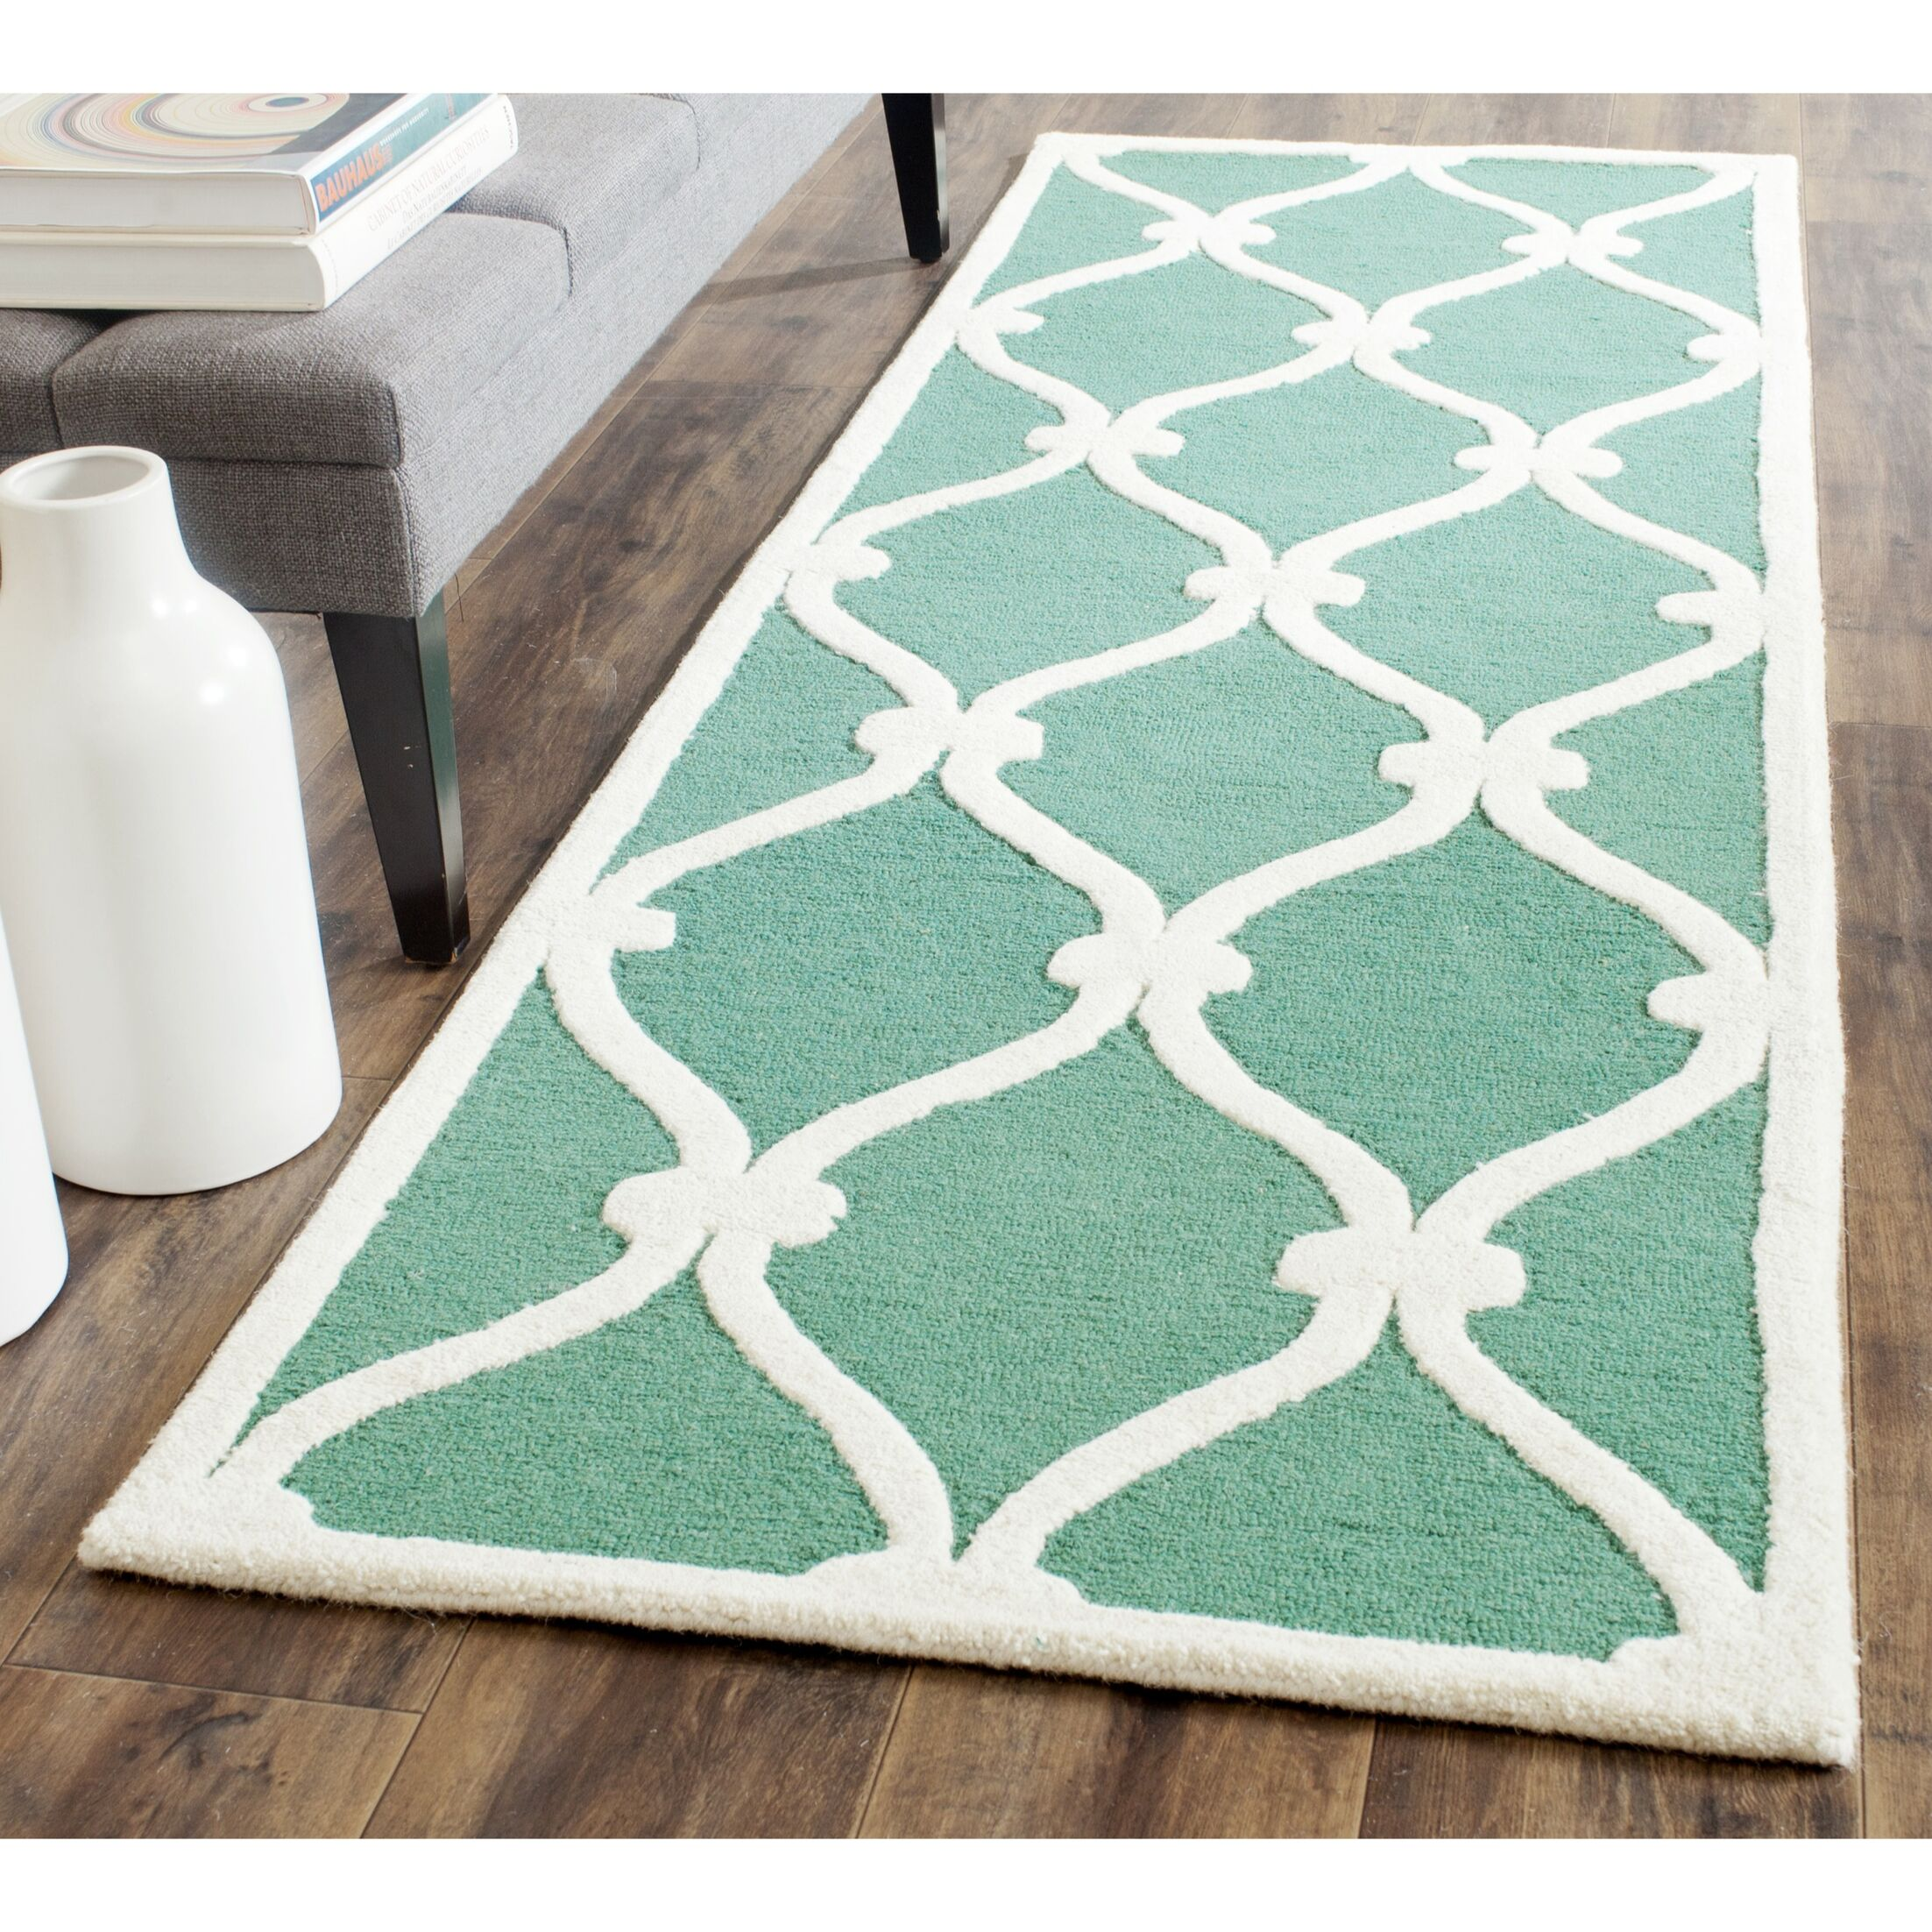 Martins Hand-Tufted Wool Teal/Ivory Area Rug Rug Size: Runner 2'6